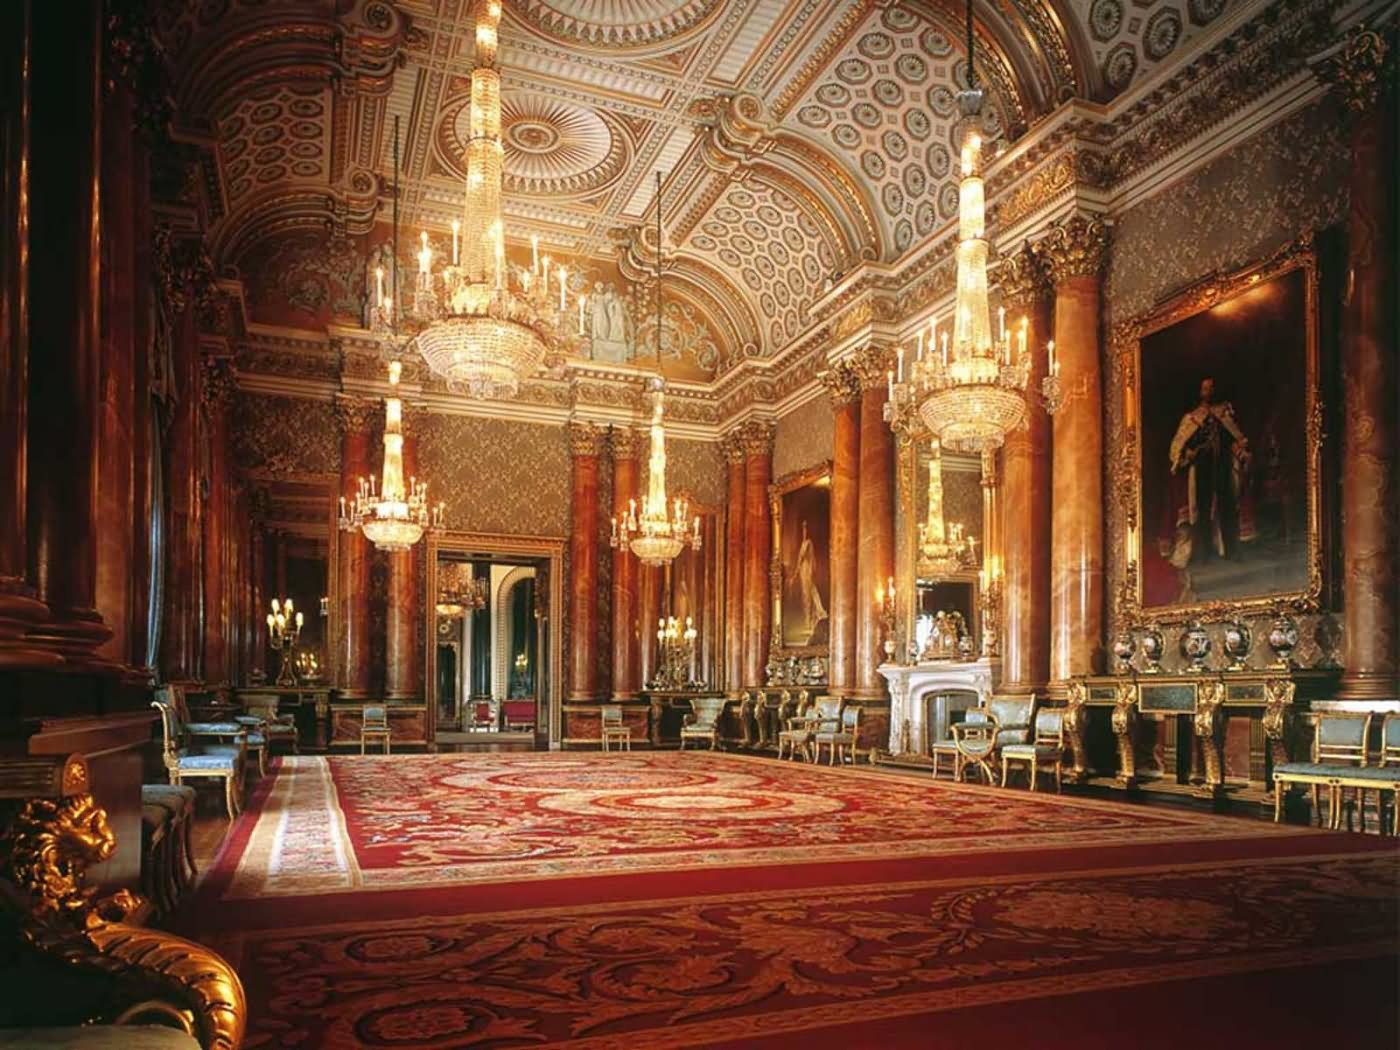 Adorable Interior Of The Buckingham Palace - THE MOST BEAUTIFUL INTERIOR PICTURES OF BUCKINGHAM PALACE LONDON